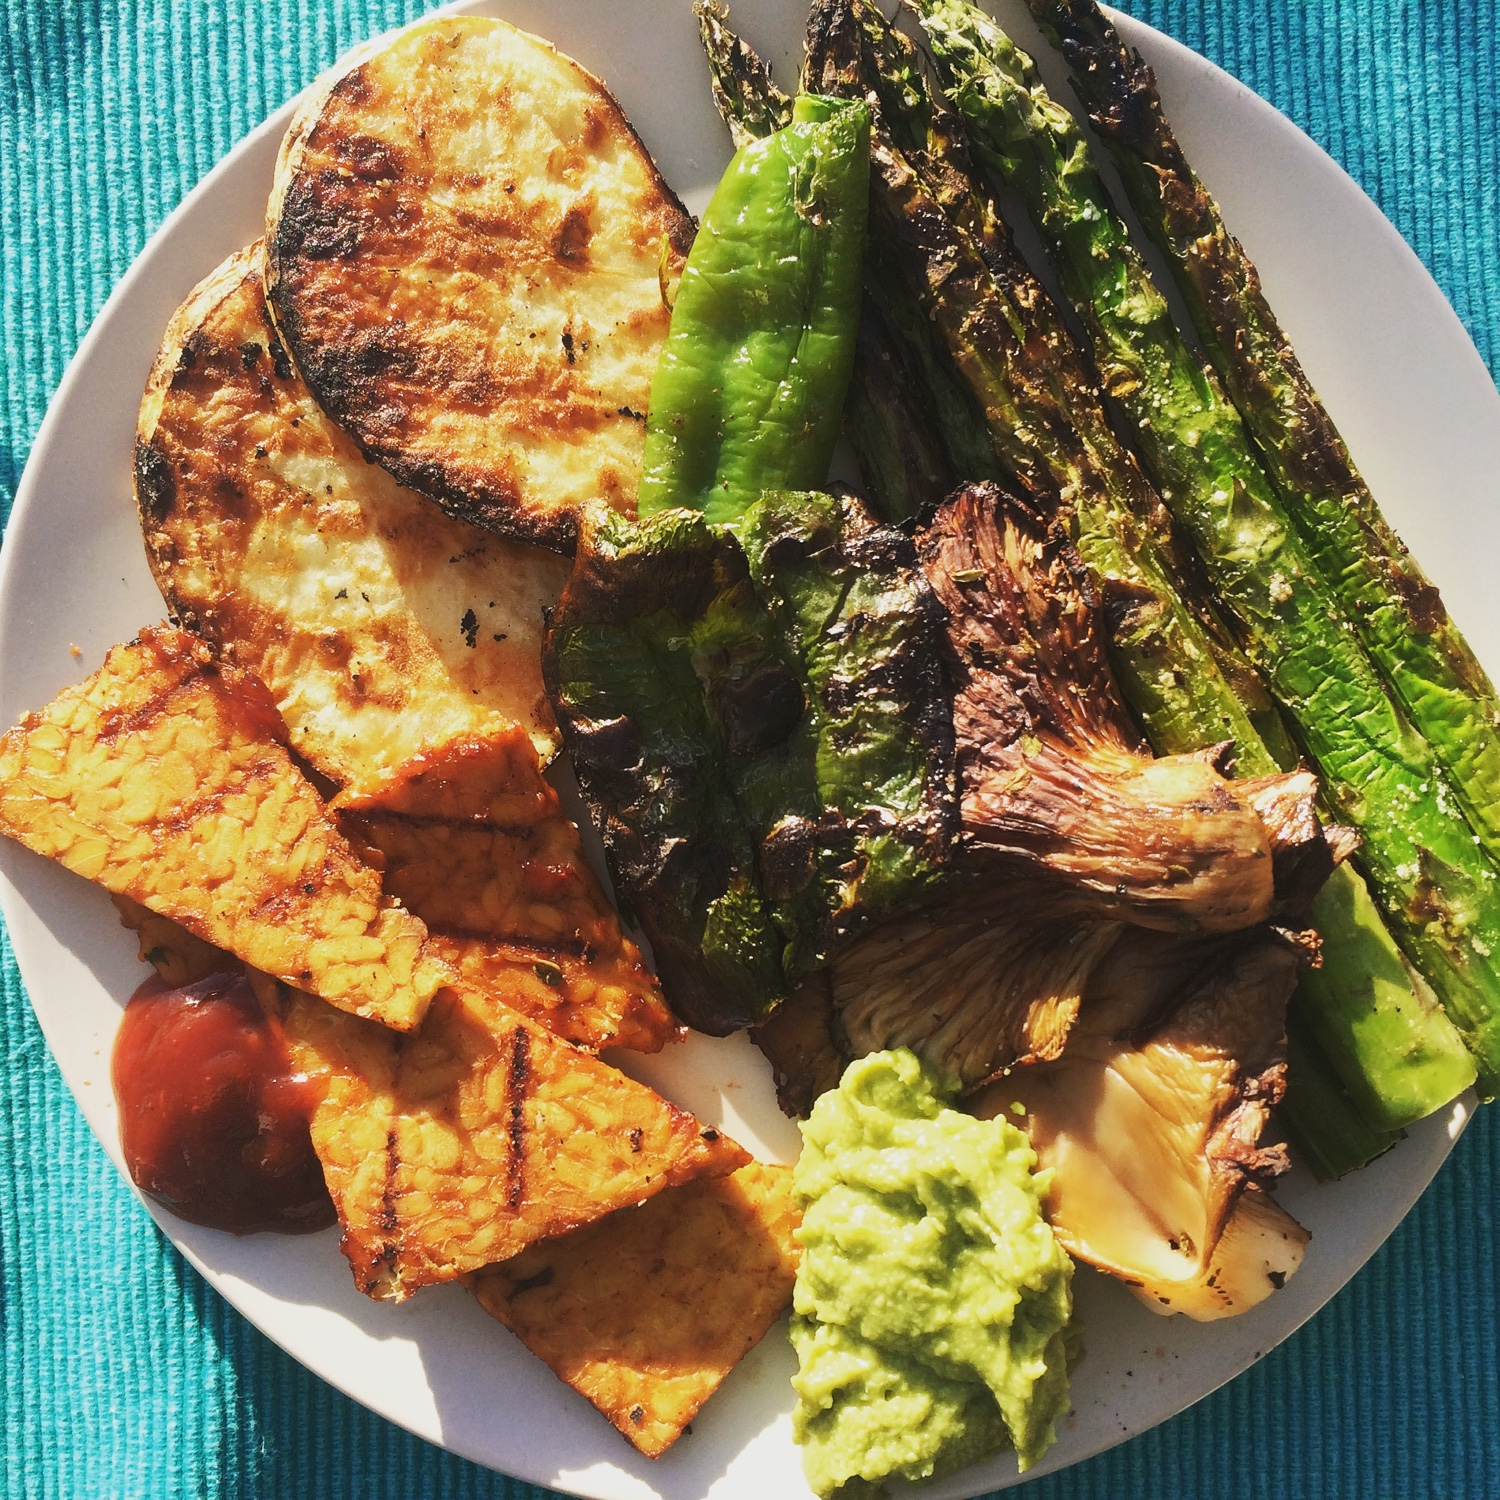 vegan_barbecue_recipes_barbecue_sides_grilled_vegetables_.jpg